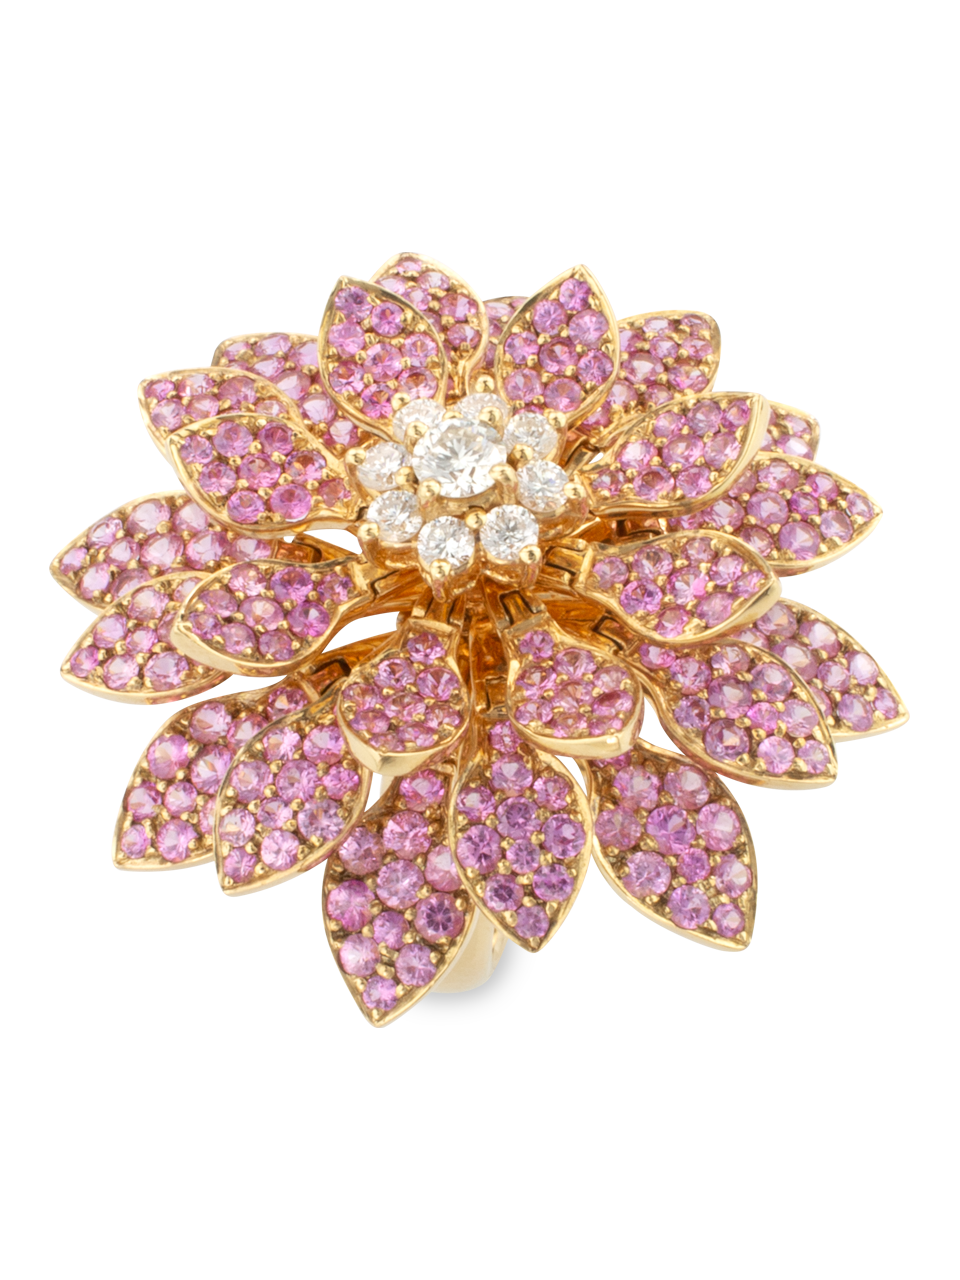 Moving Flower Ring with Pink Sapphires-1